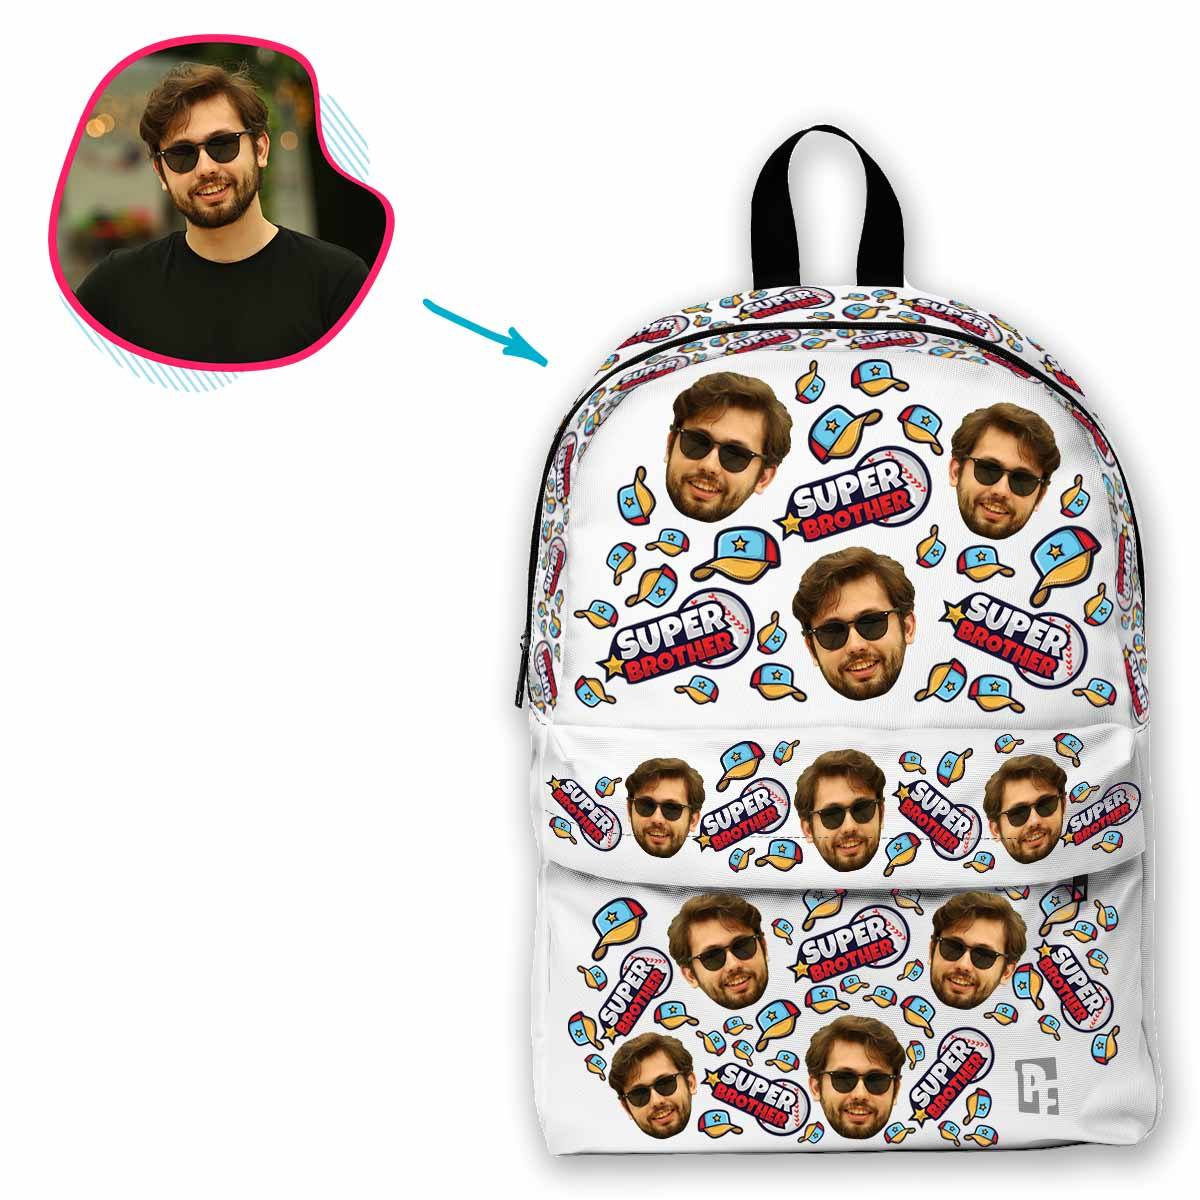 white Super Brother classic backpack personalized with photo of face printed on it